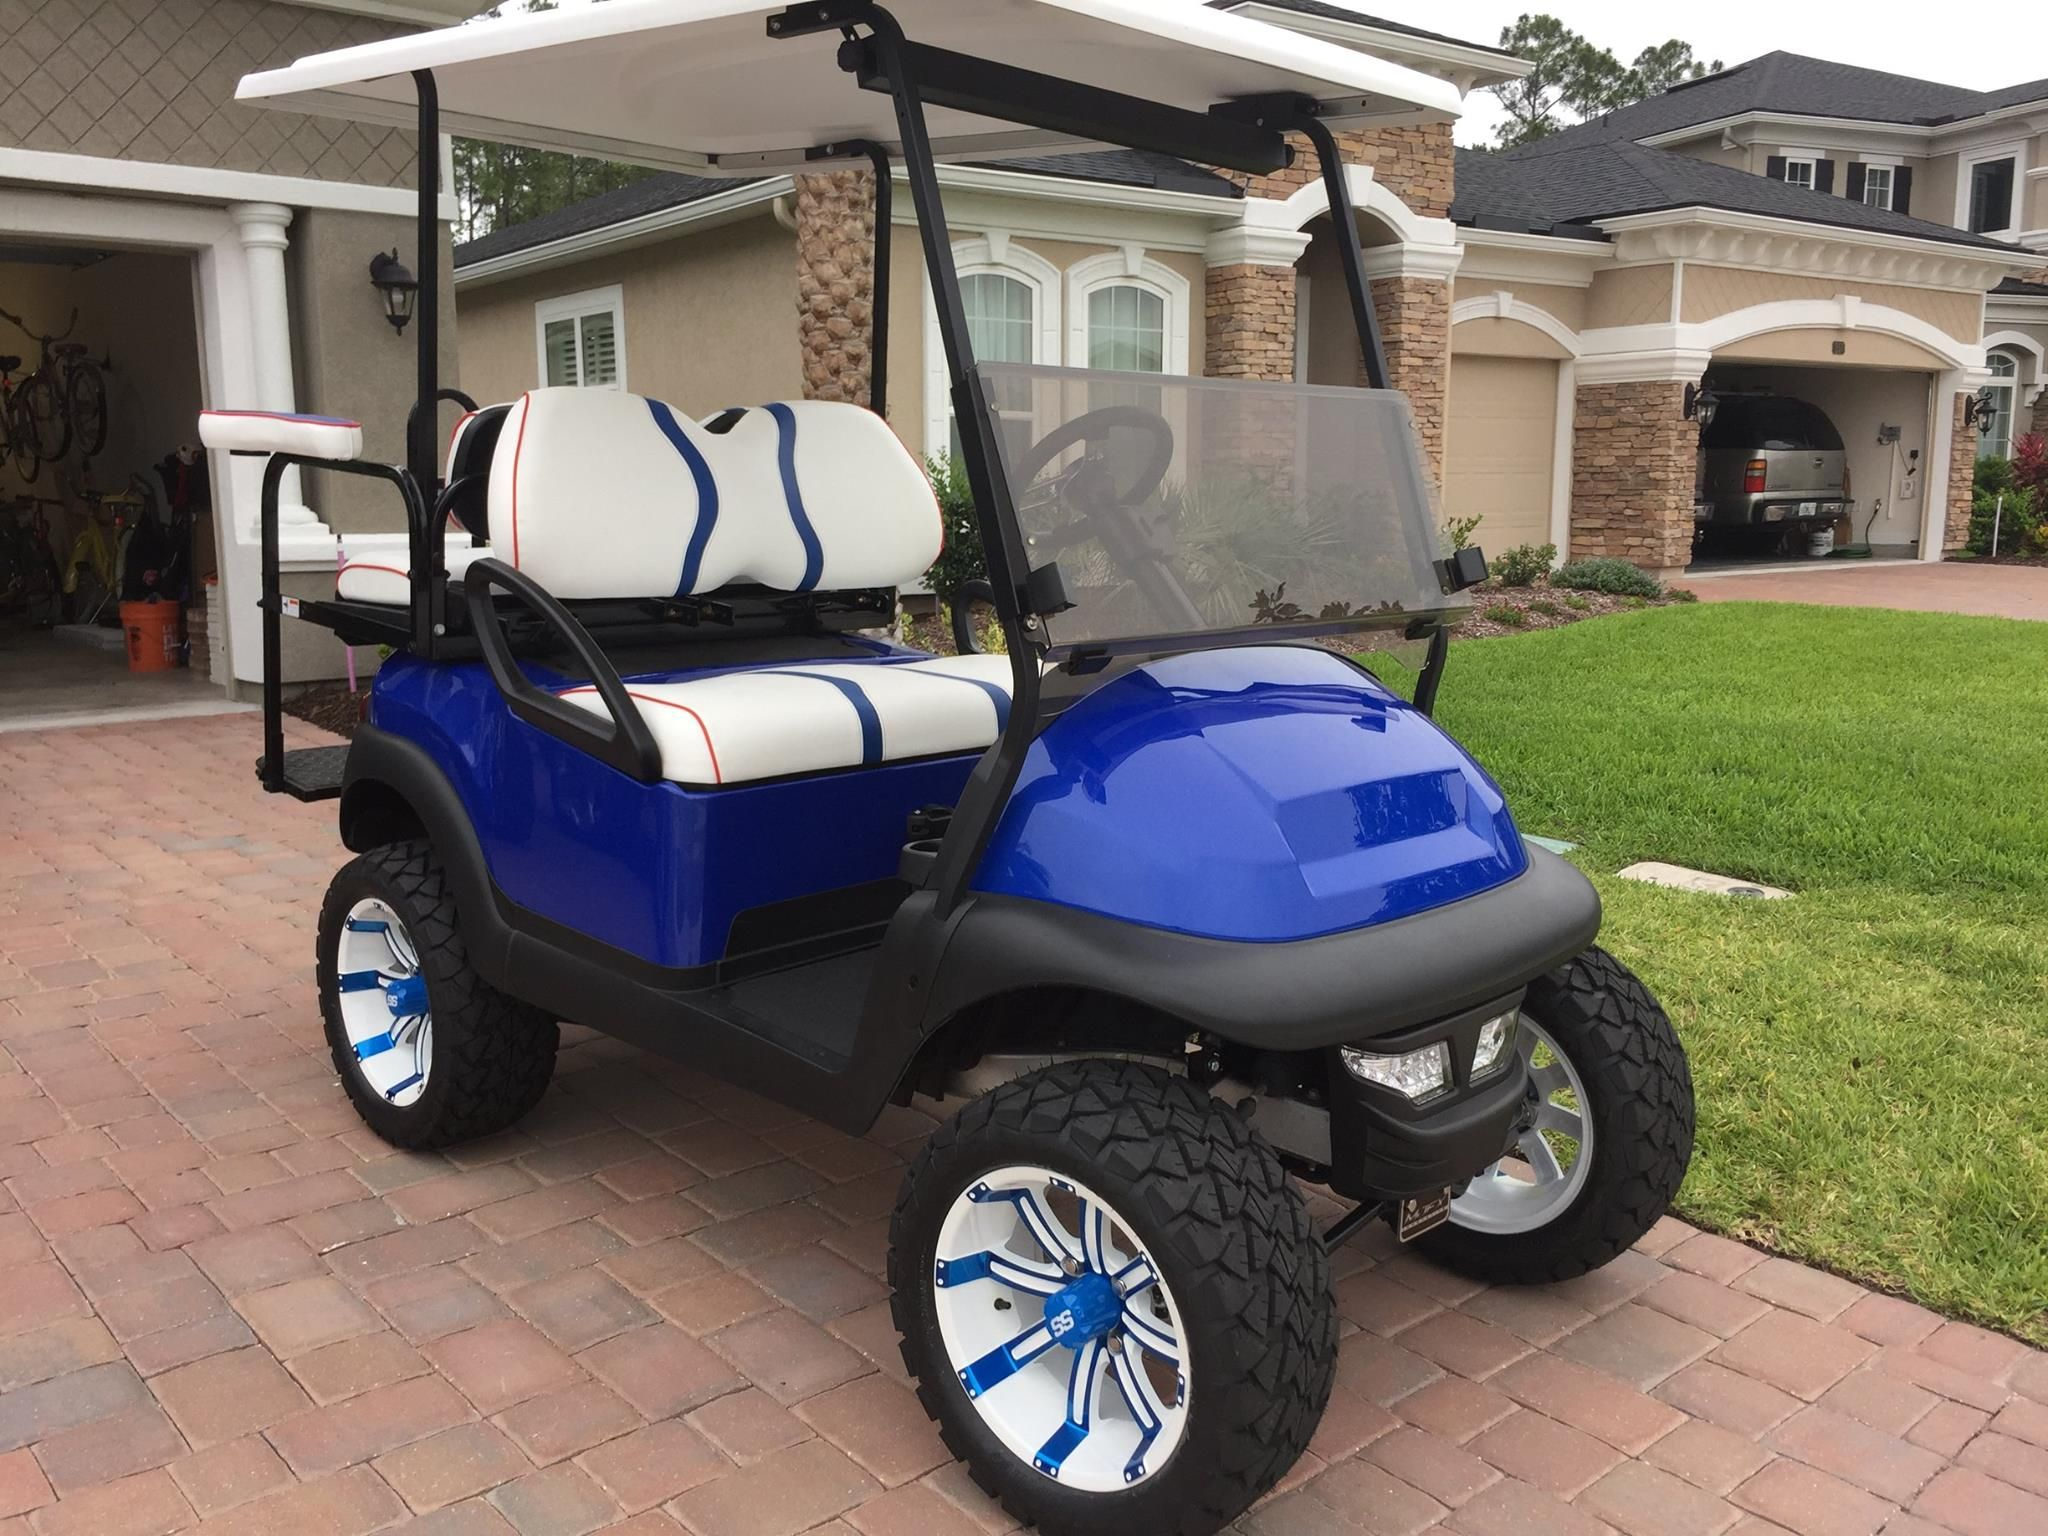 Royal Blue Club Car Precedent Golf Cart With Custom White And Blue Wheels And Seating Golf Carts Club Car Golf Cart Golf Cart Windshield